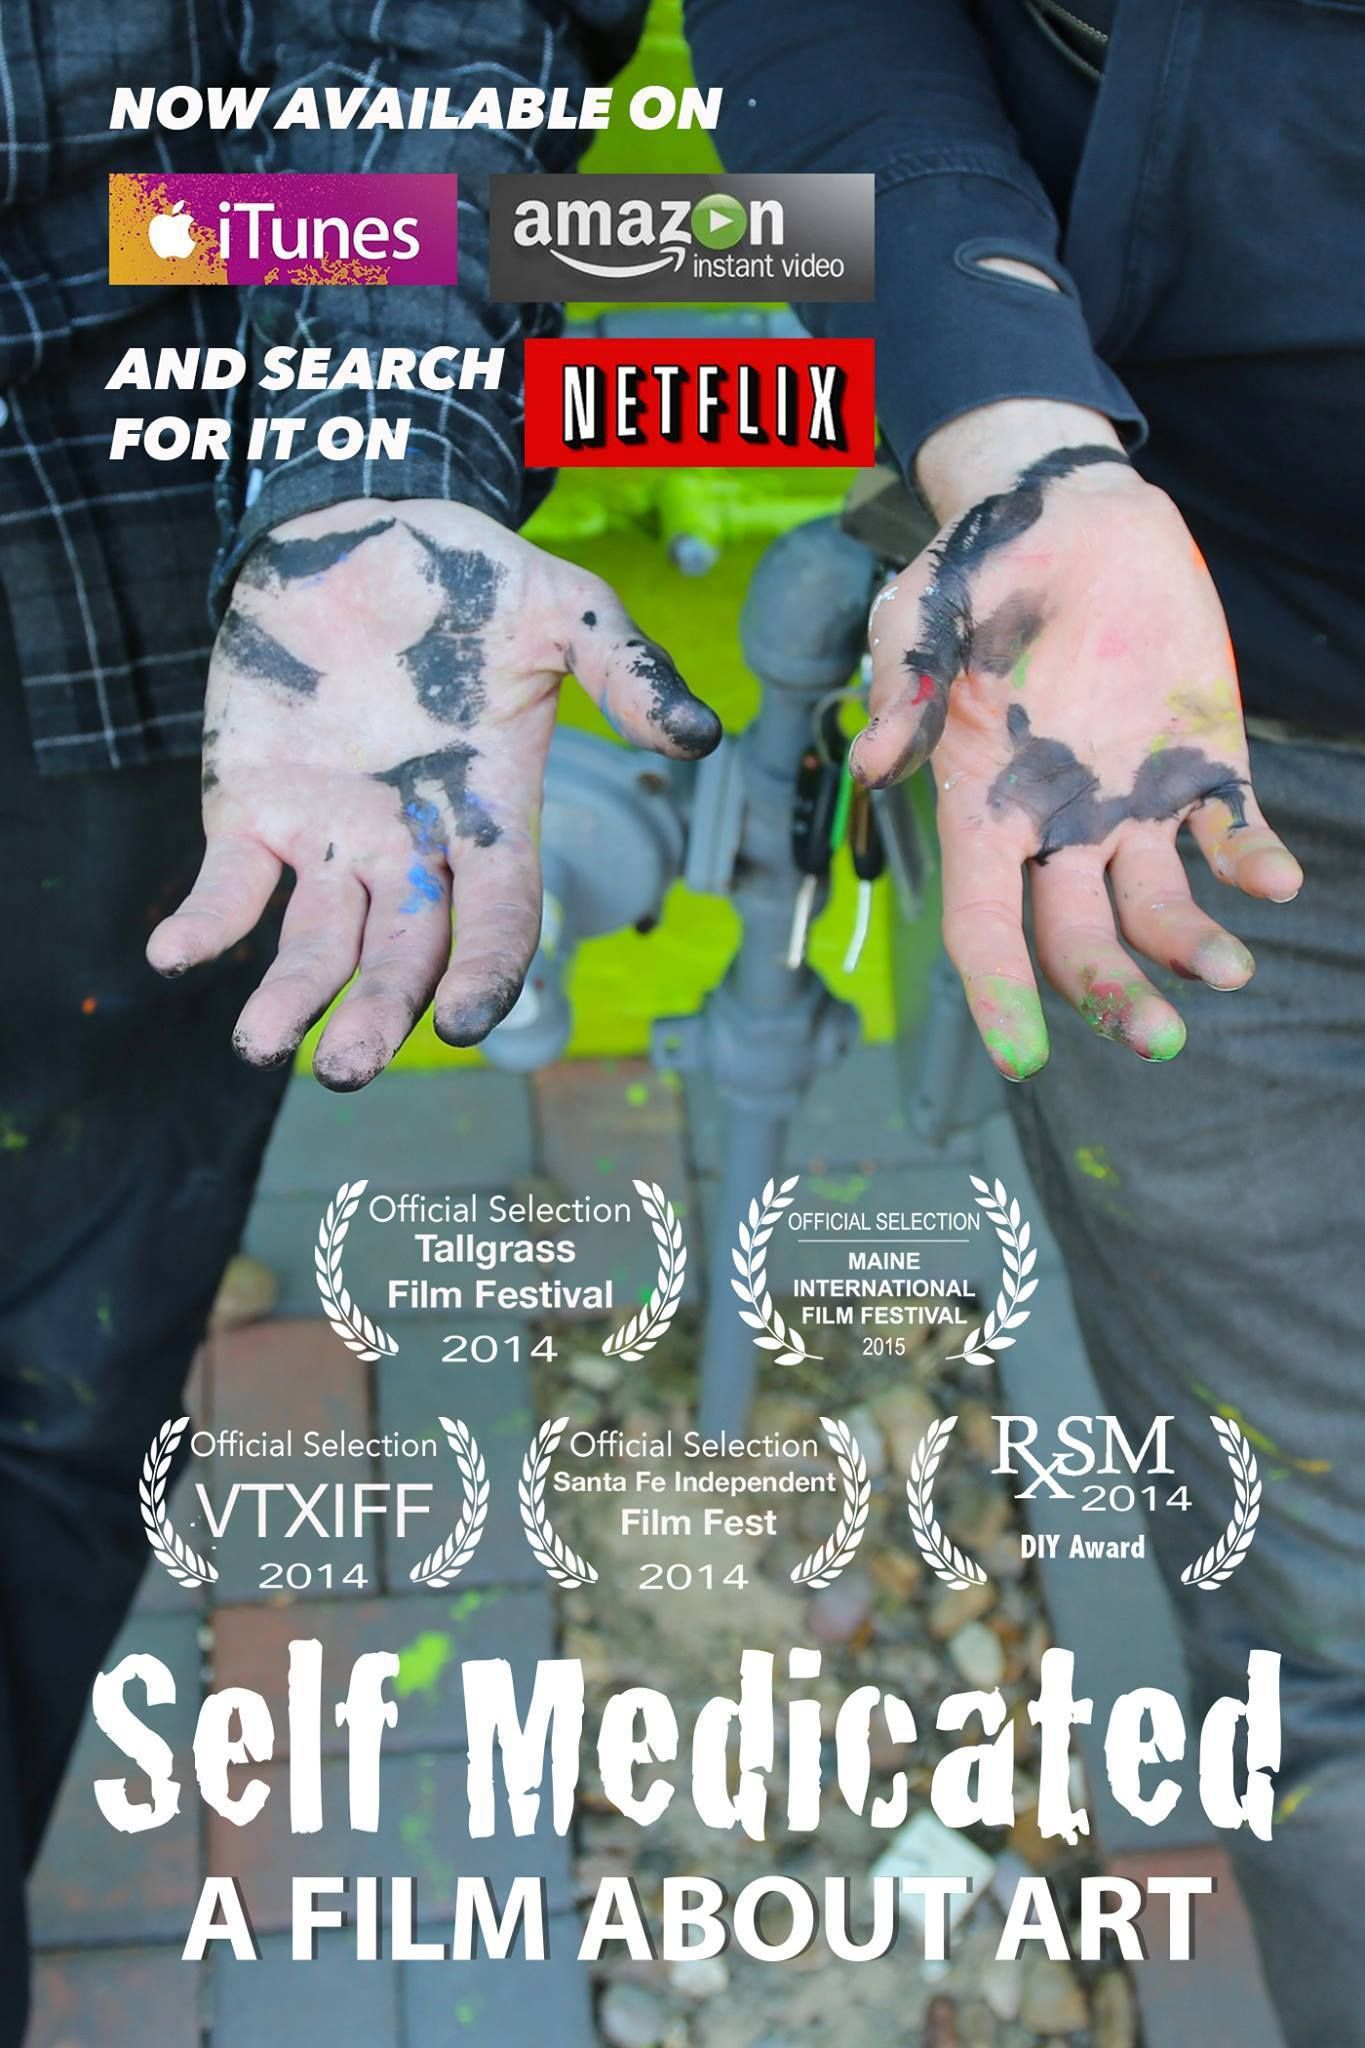 self medicated Self Medicated movie about art Pinterest Movie